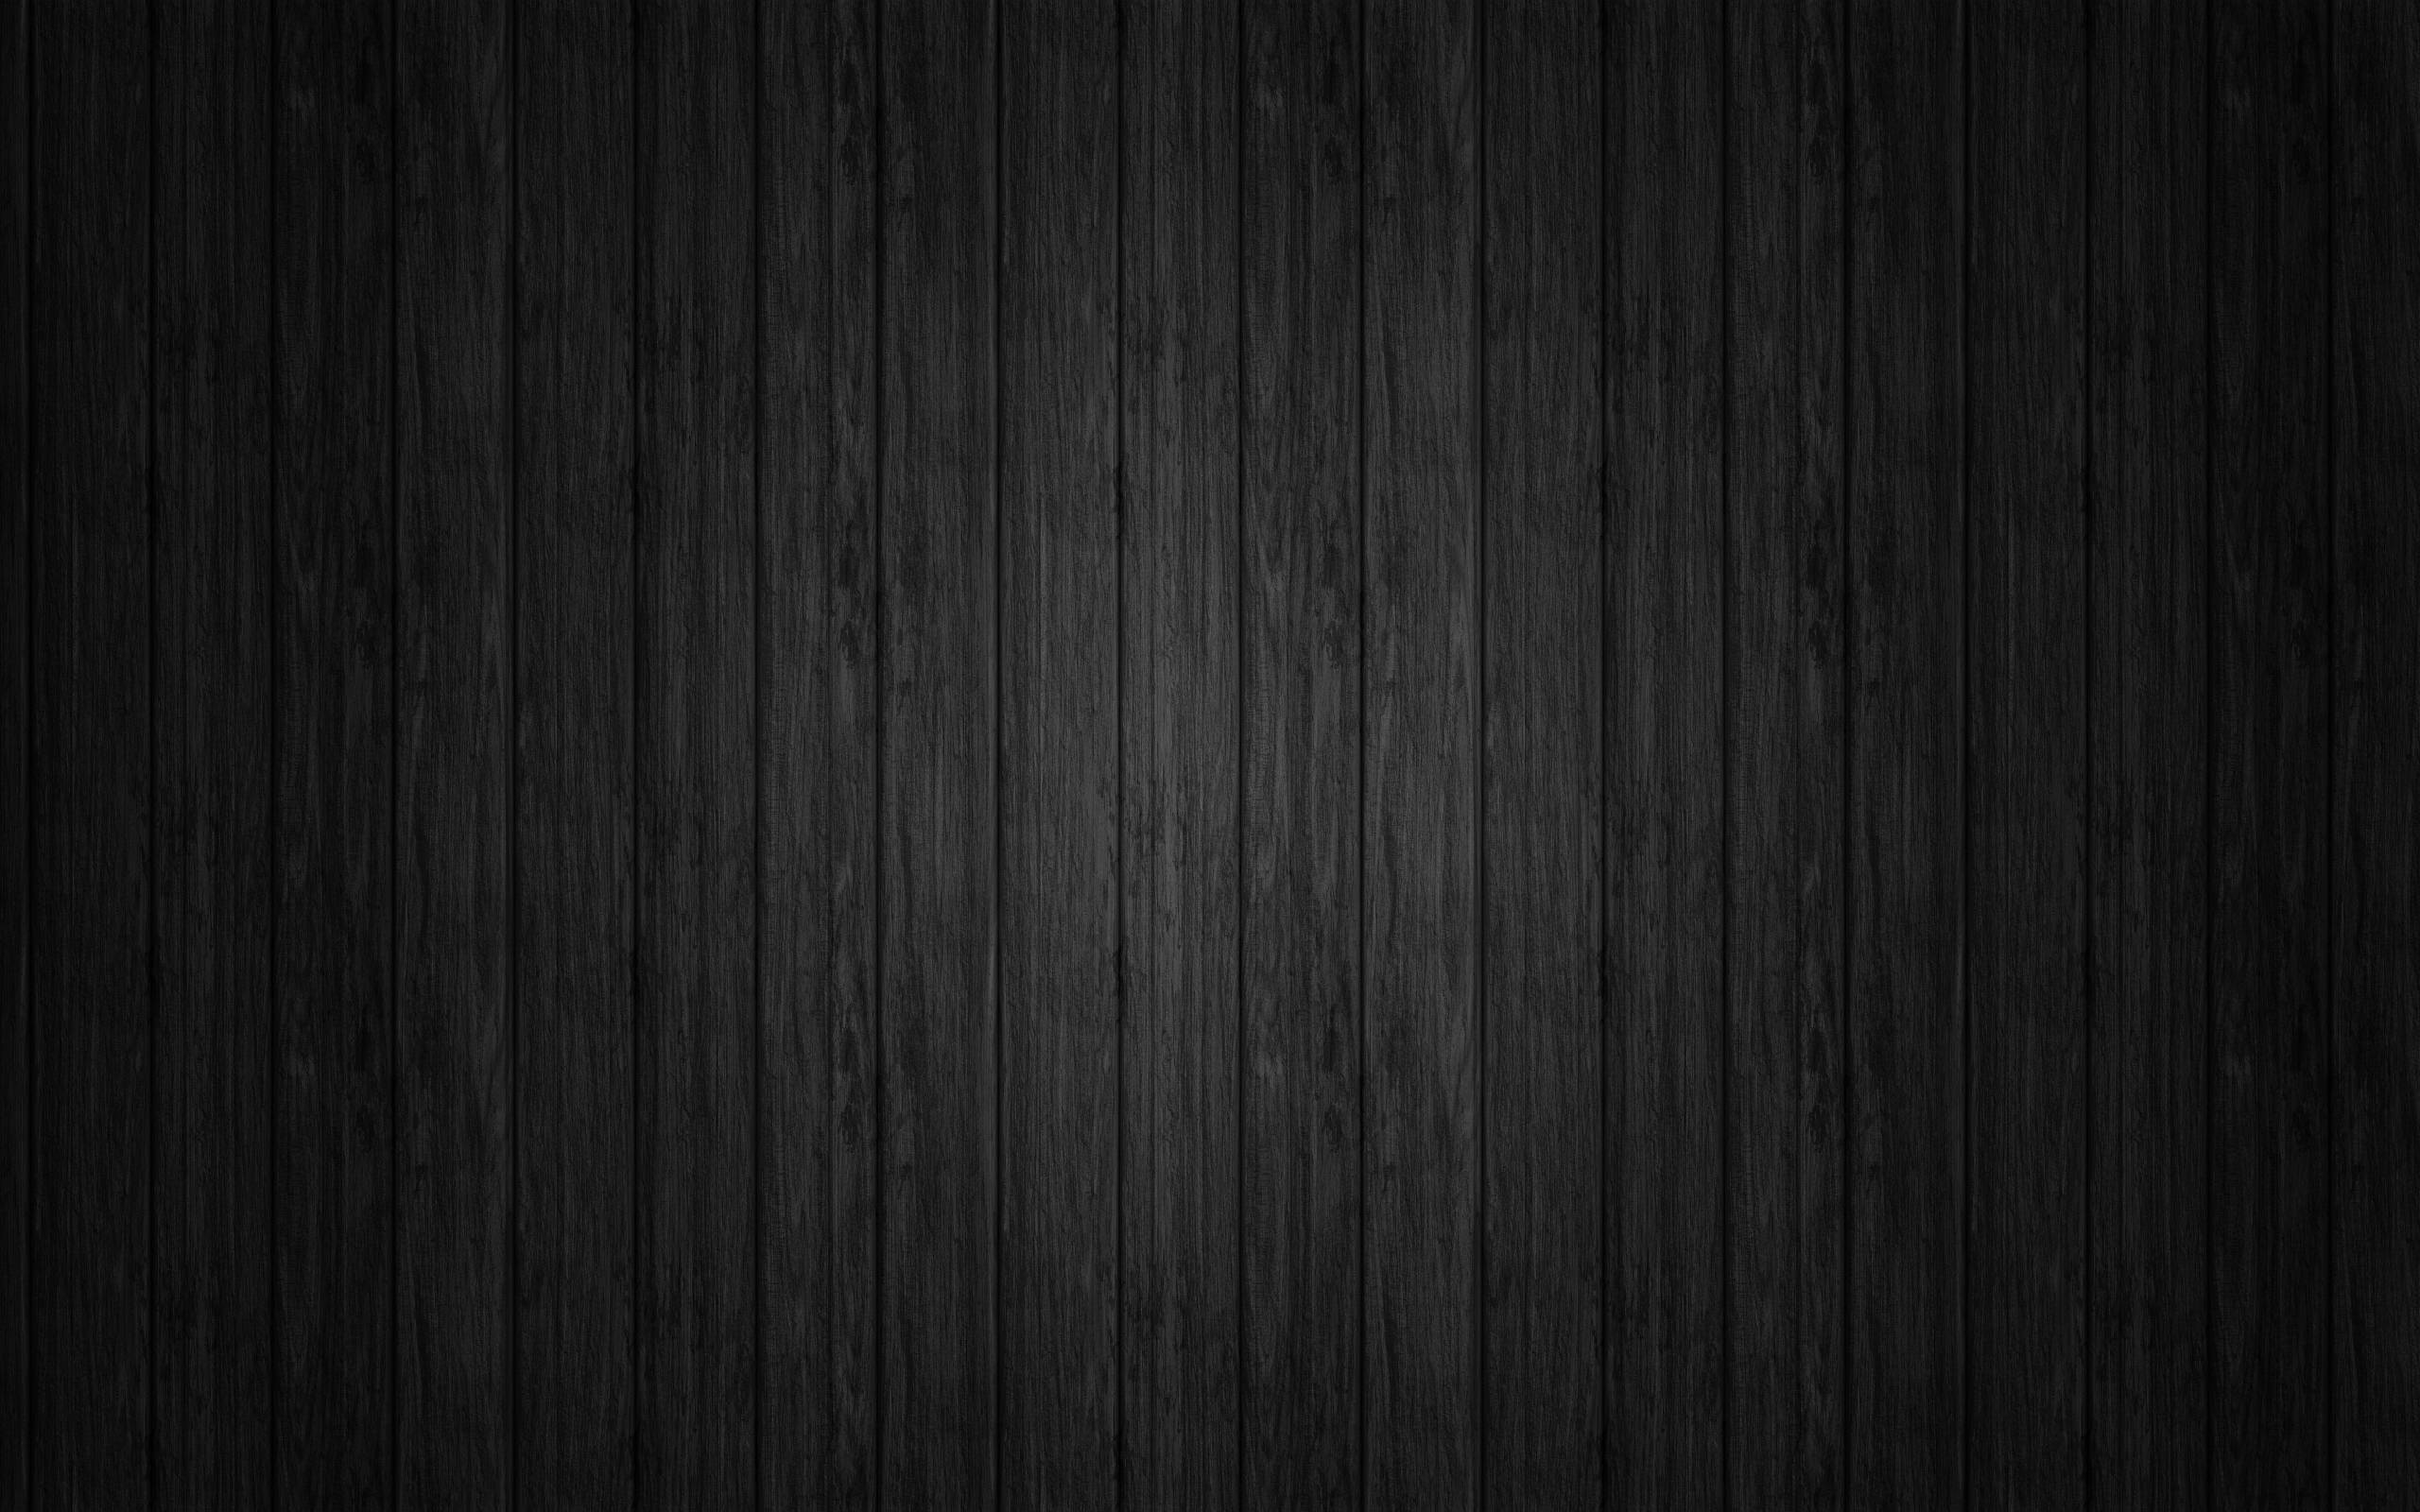 HD Texture Wallpapers